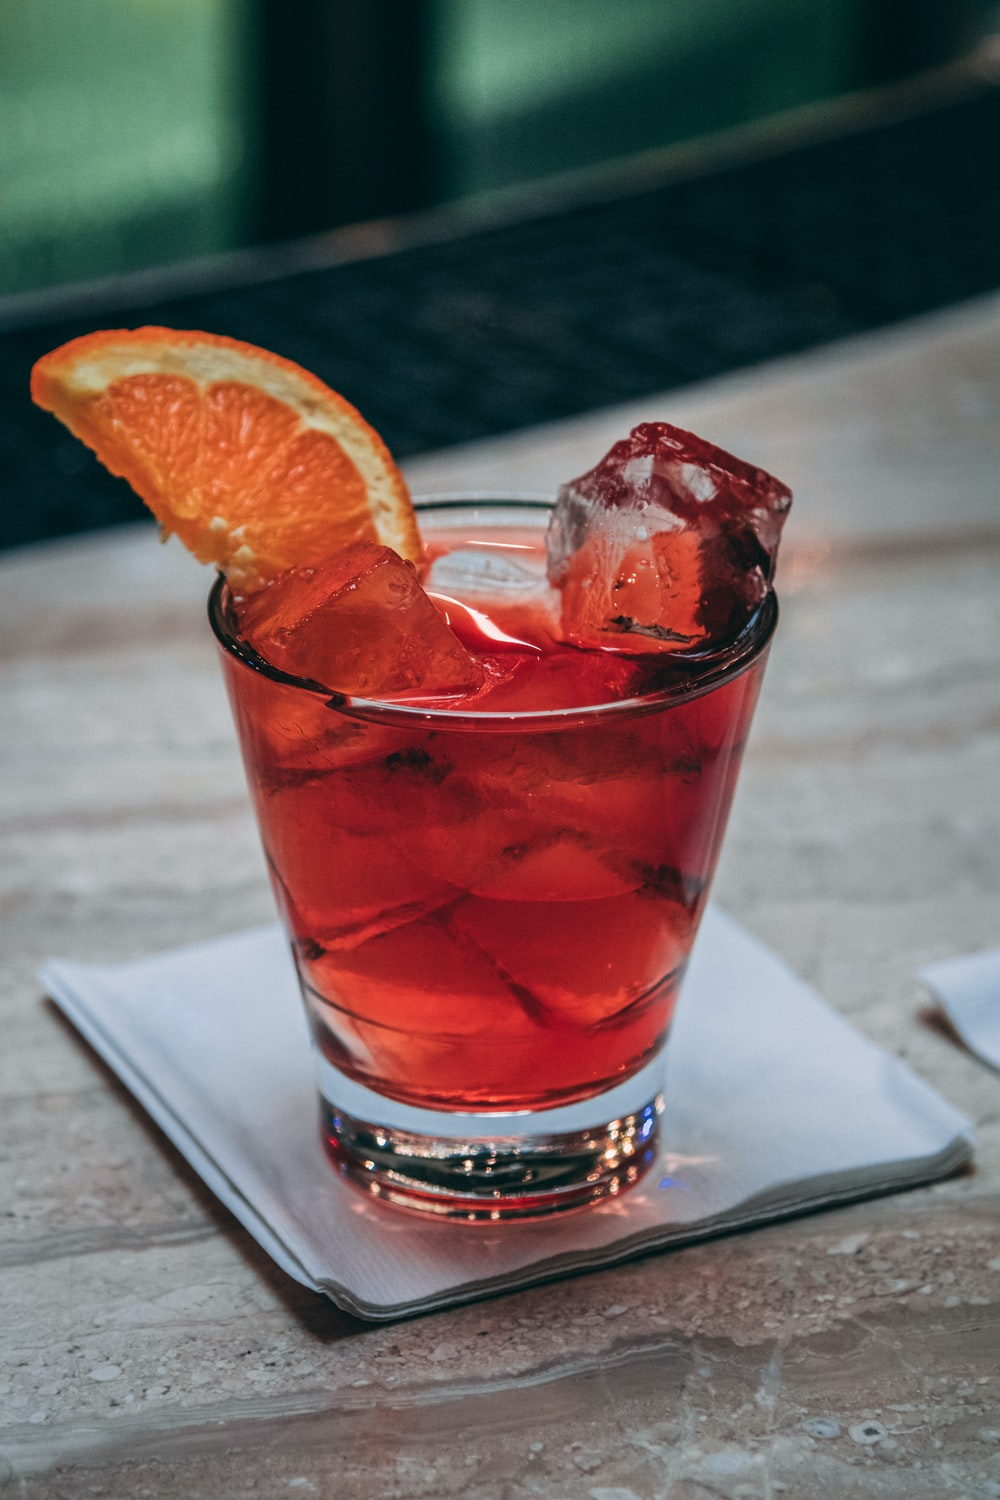 clear drinking glass with red liquid and sliced orange fruit